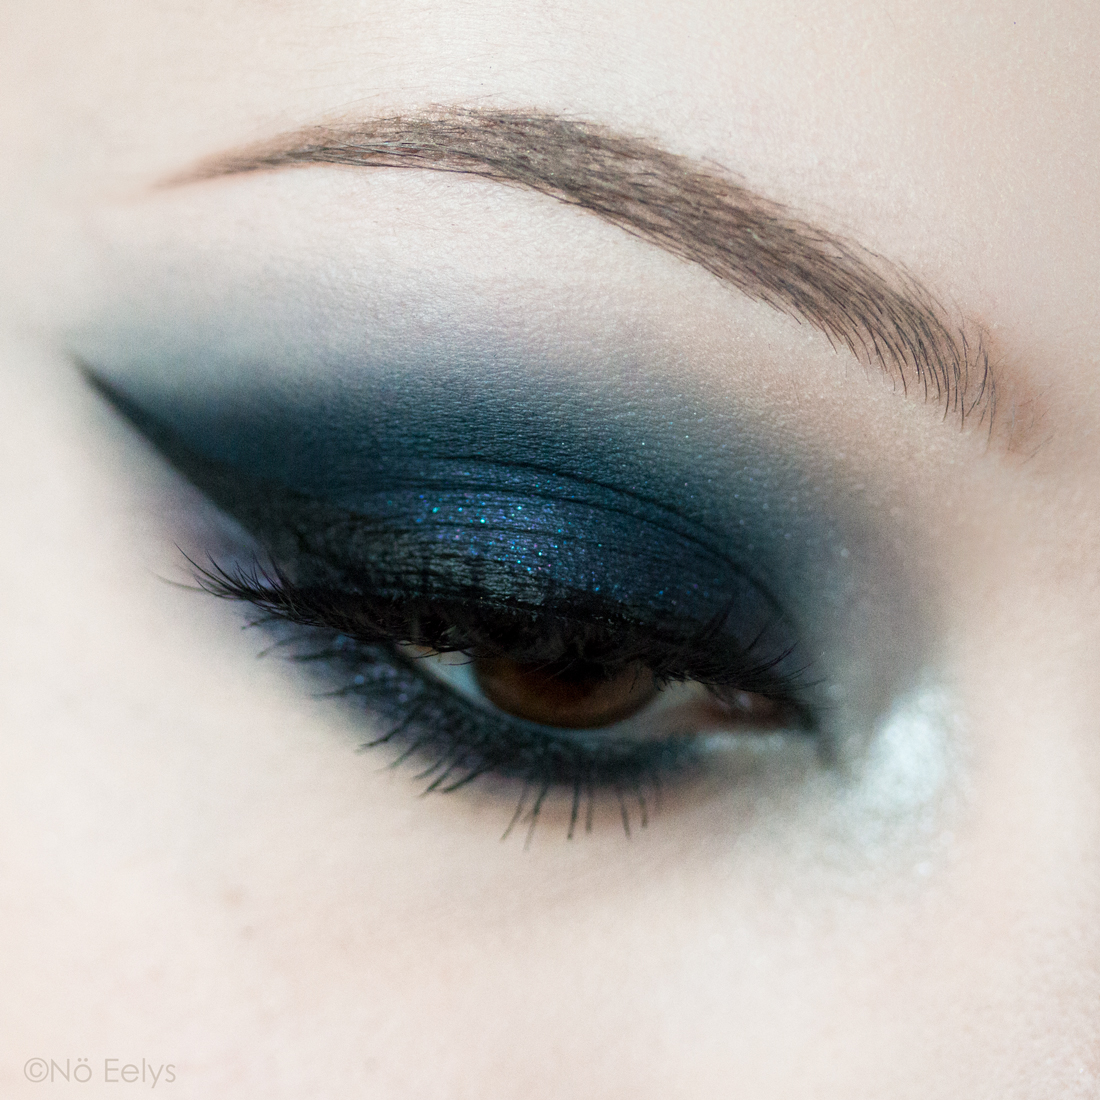 Maquillage d'inspiration gothique avec la nouvelle palette Fetish Kat Von D beauty, maquillage bleu nuit avec les fards Latex, Obsession, Cuffs et Rubber (close up)